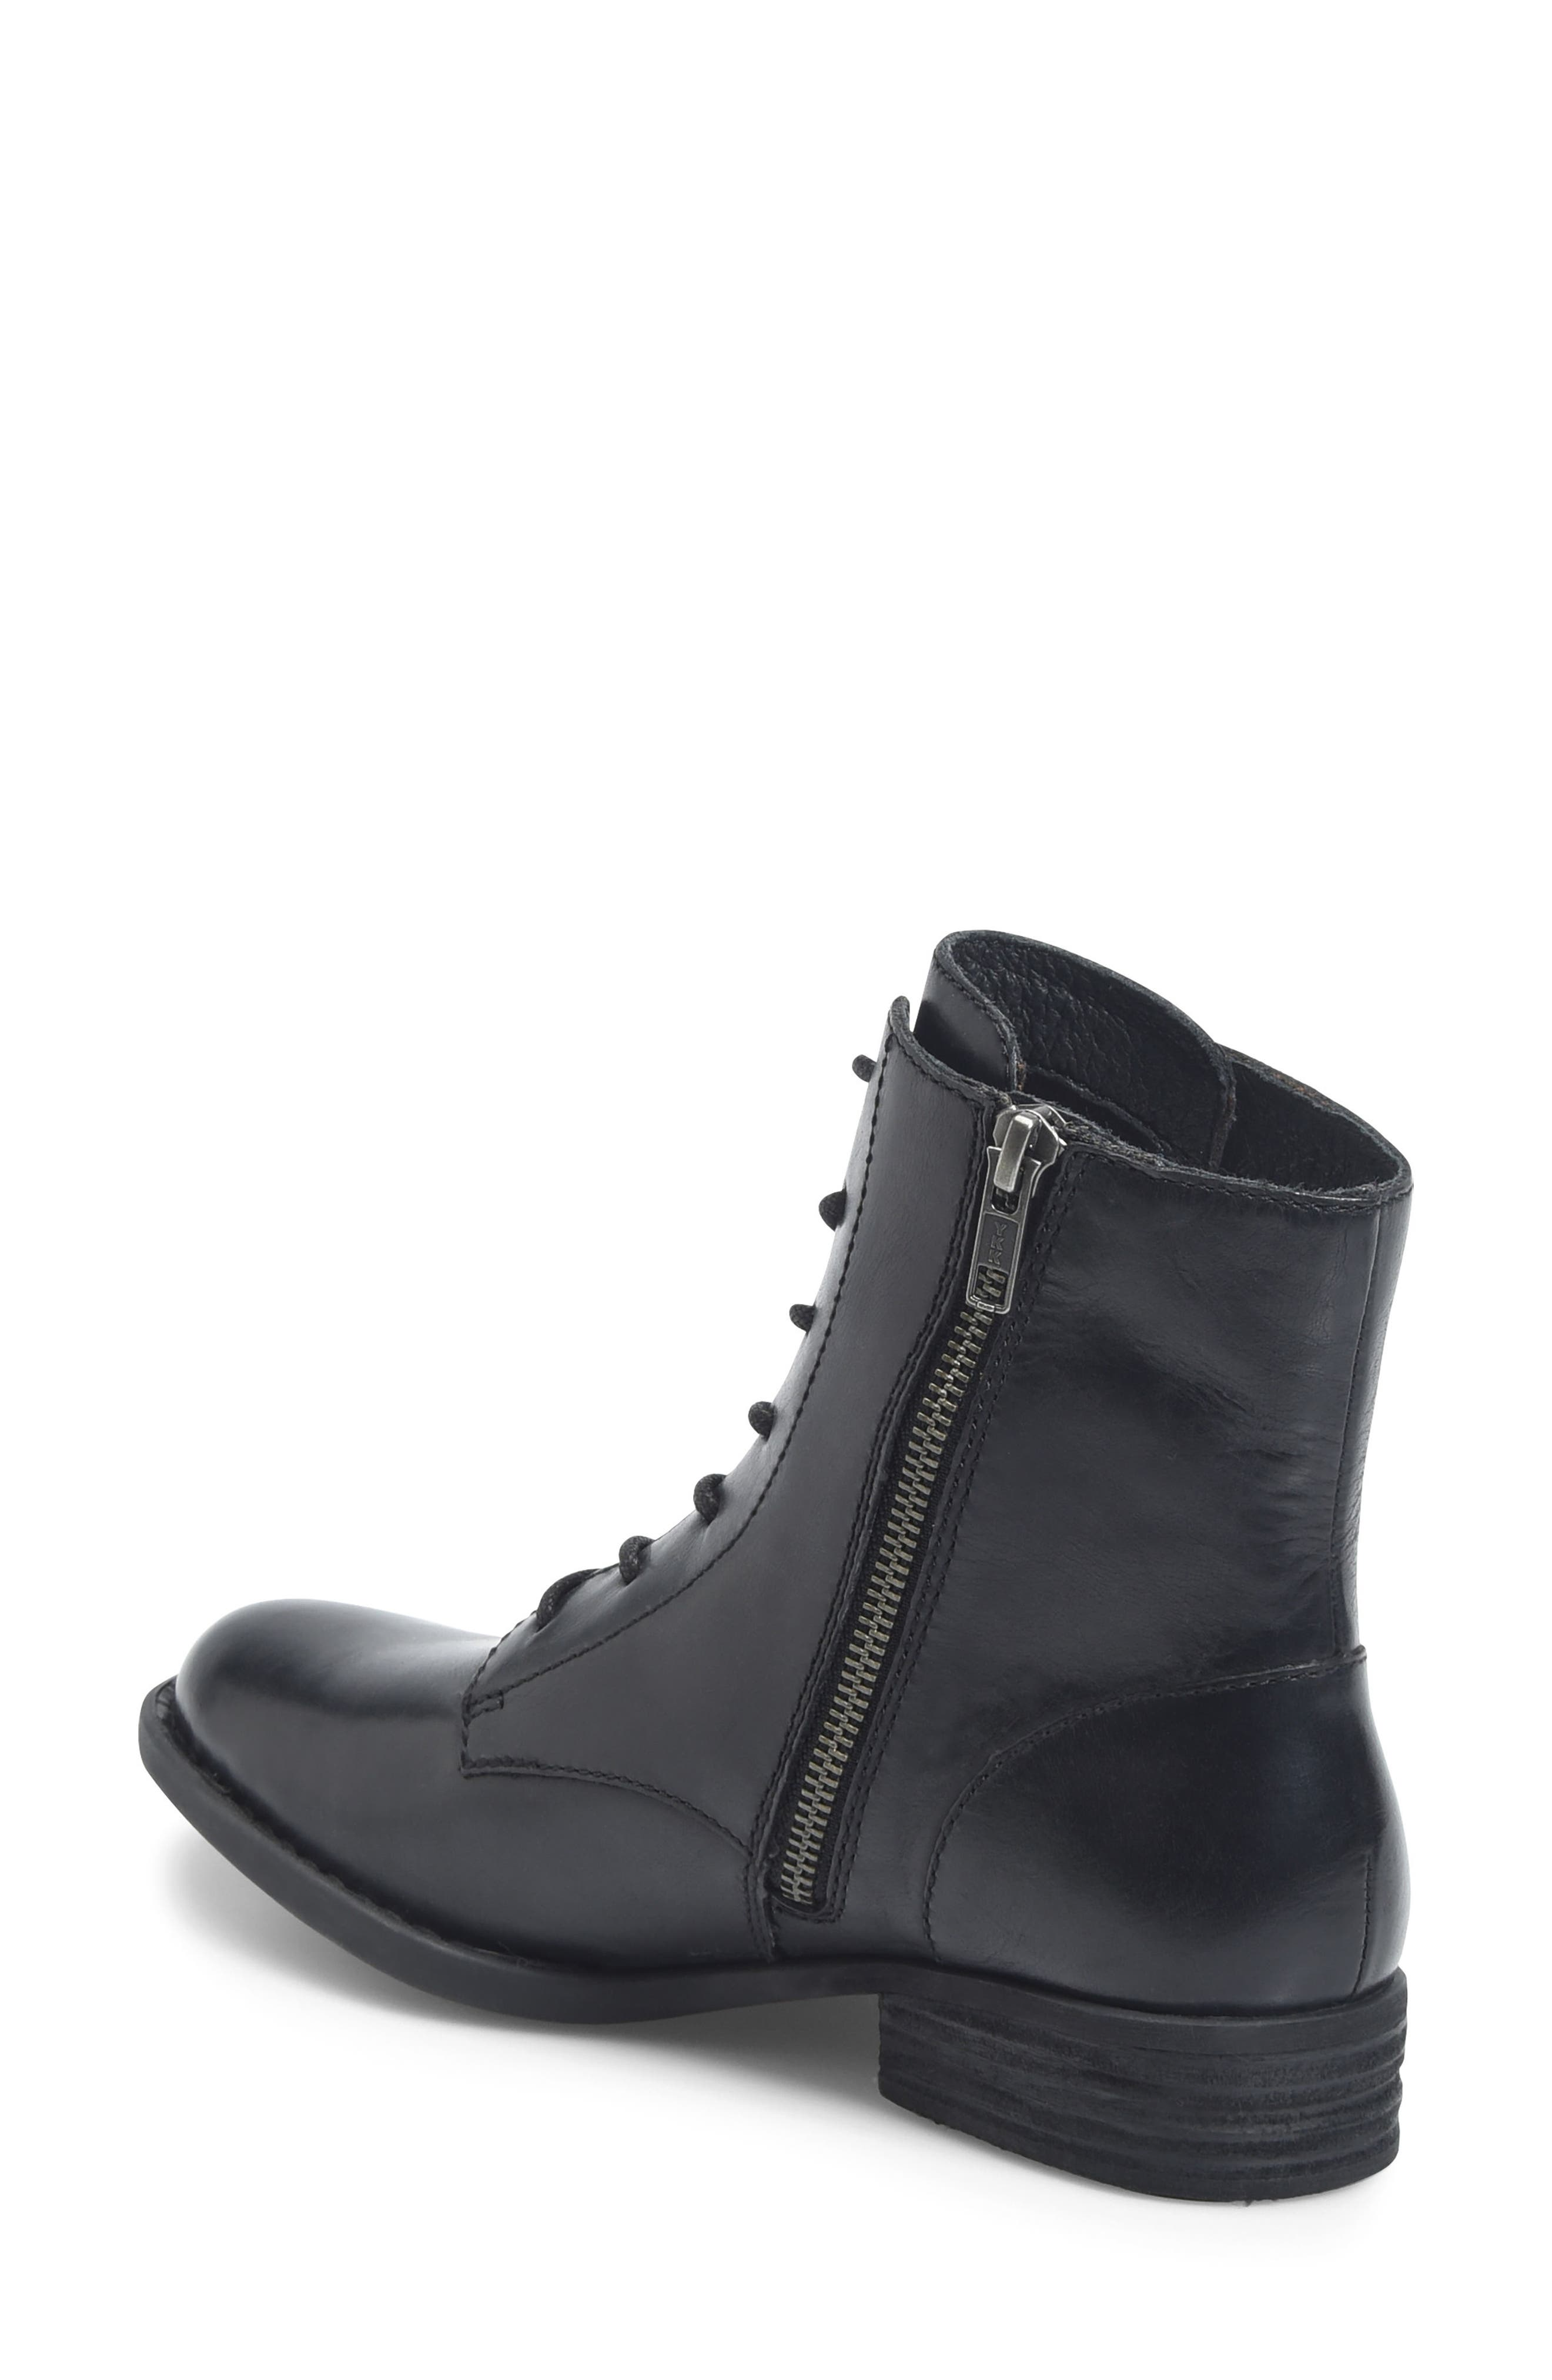 Clements Lace-Up Boot,                             Alternate thumbnail 6, color,